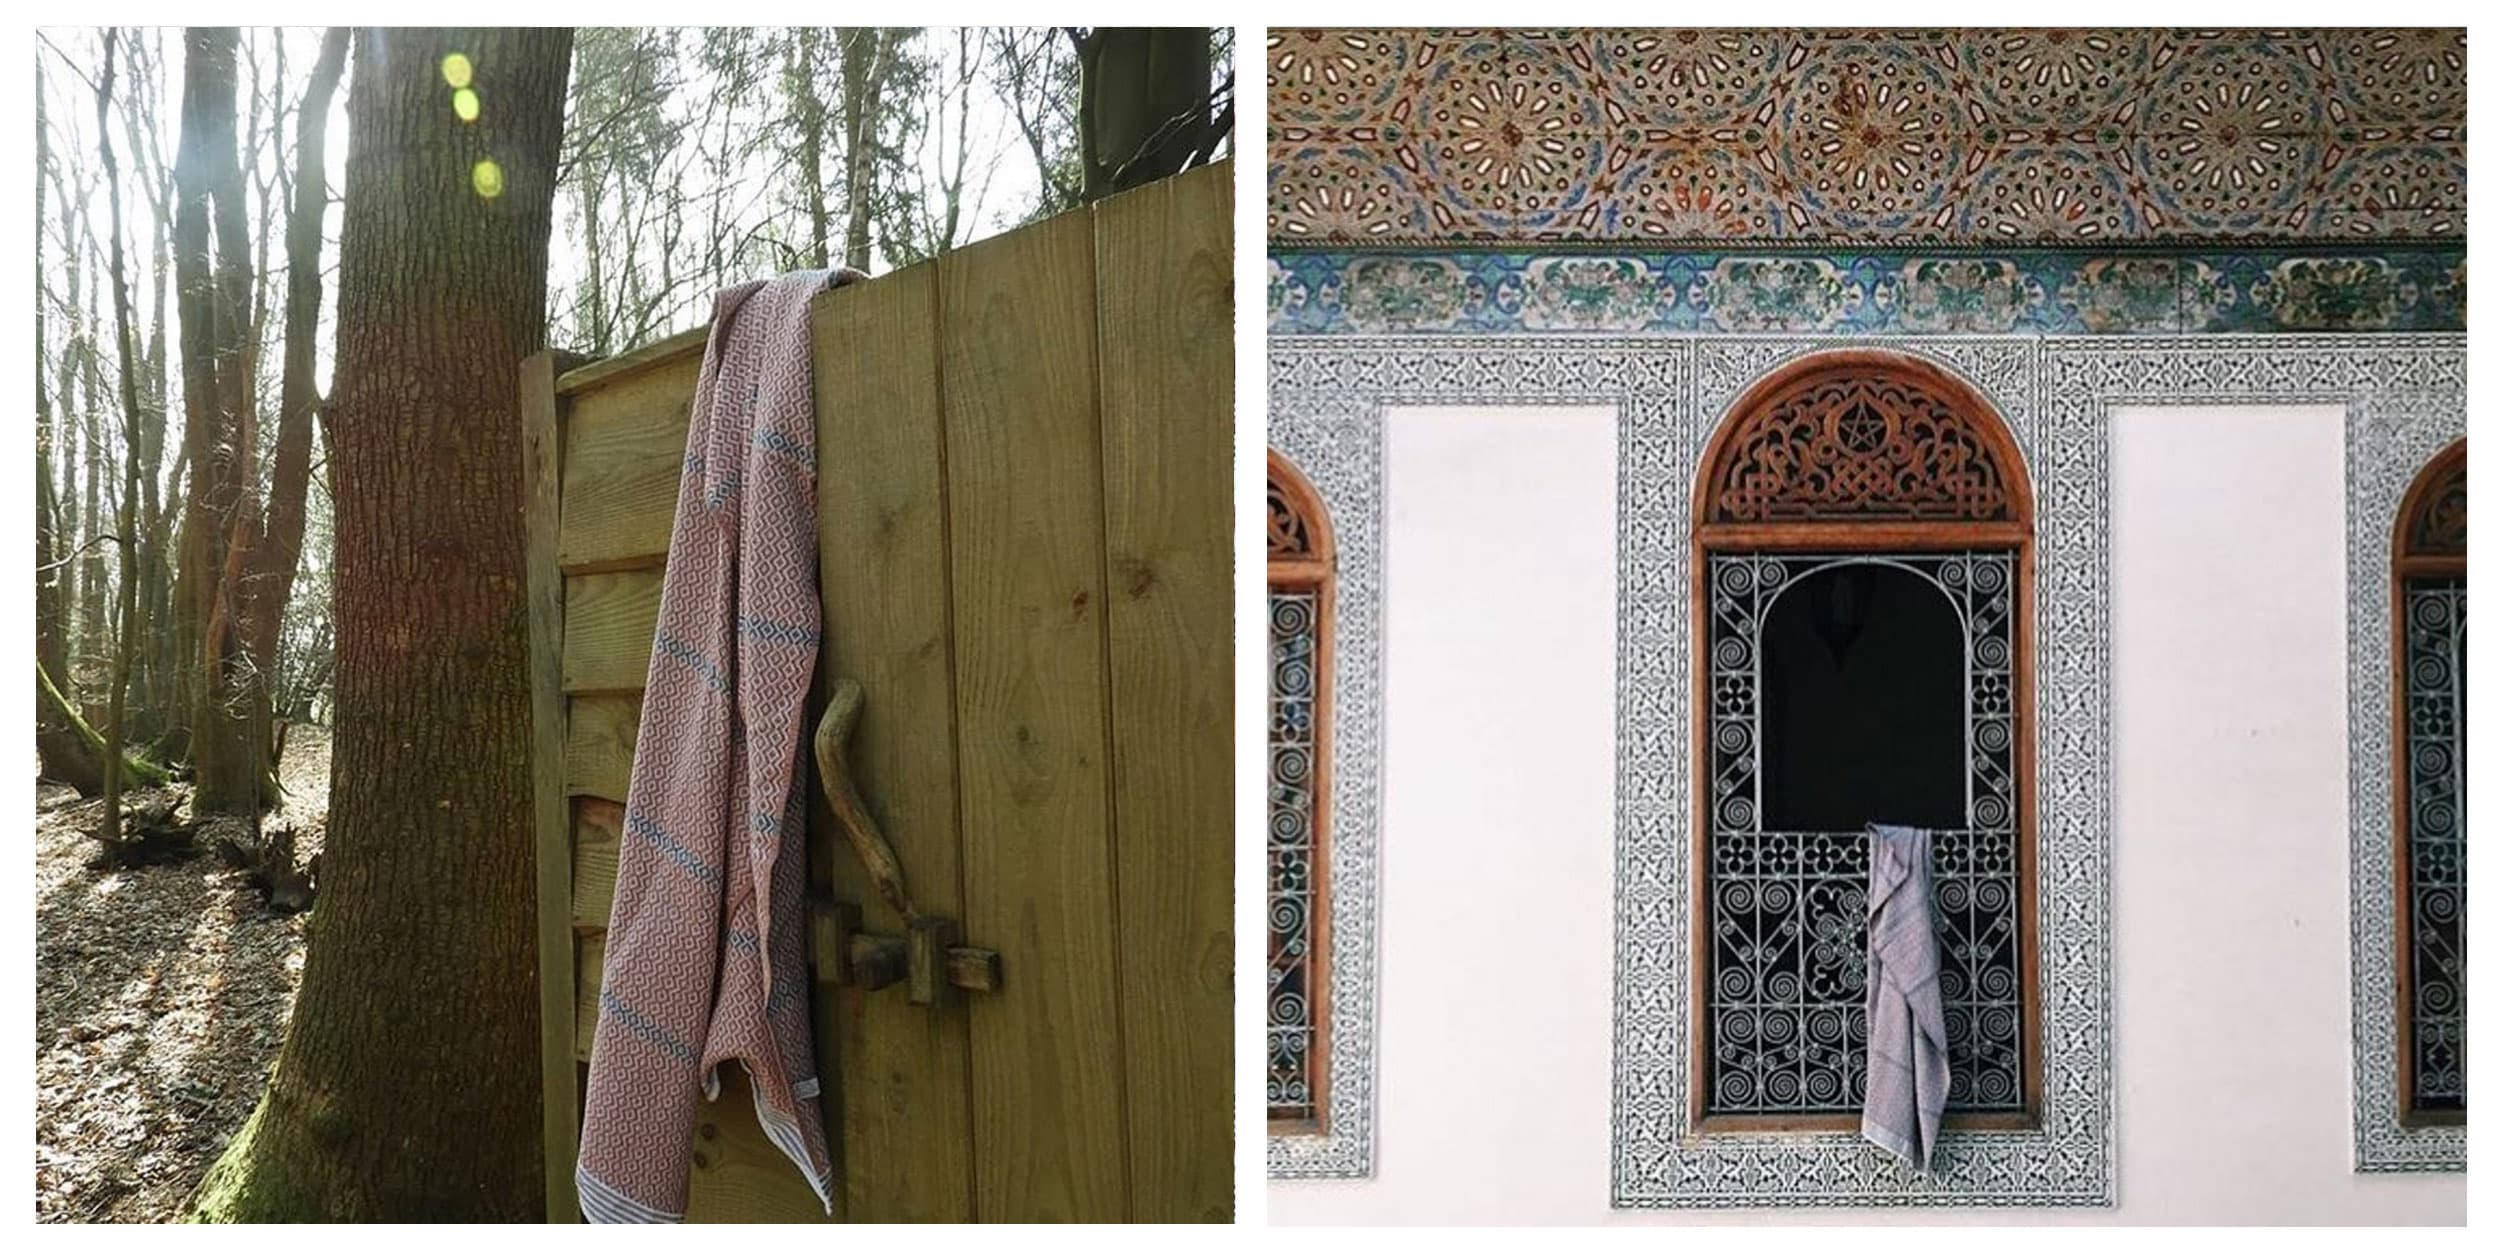 Mungo instagram competition asking followers to share their towel photographs. Featured here is the Itawuli in Morocco